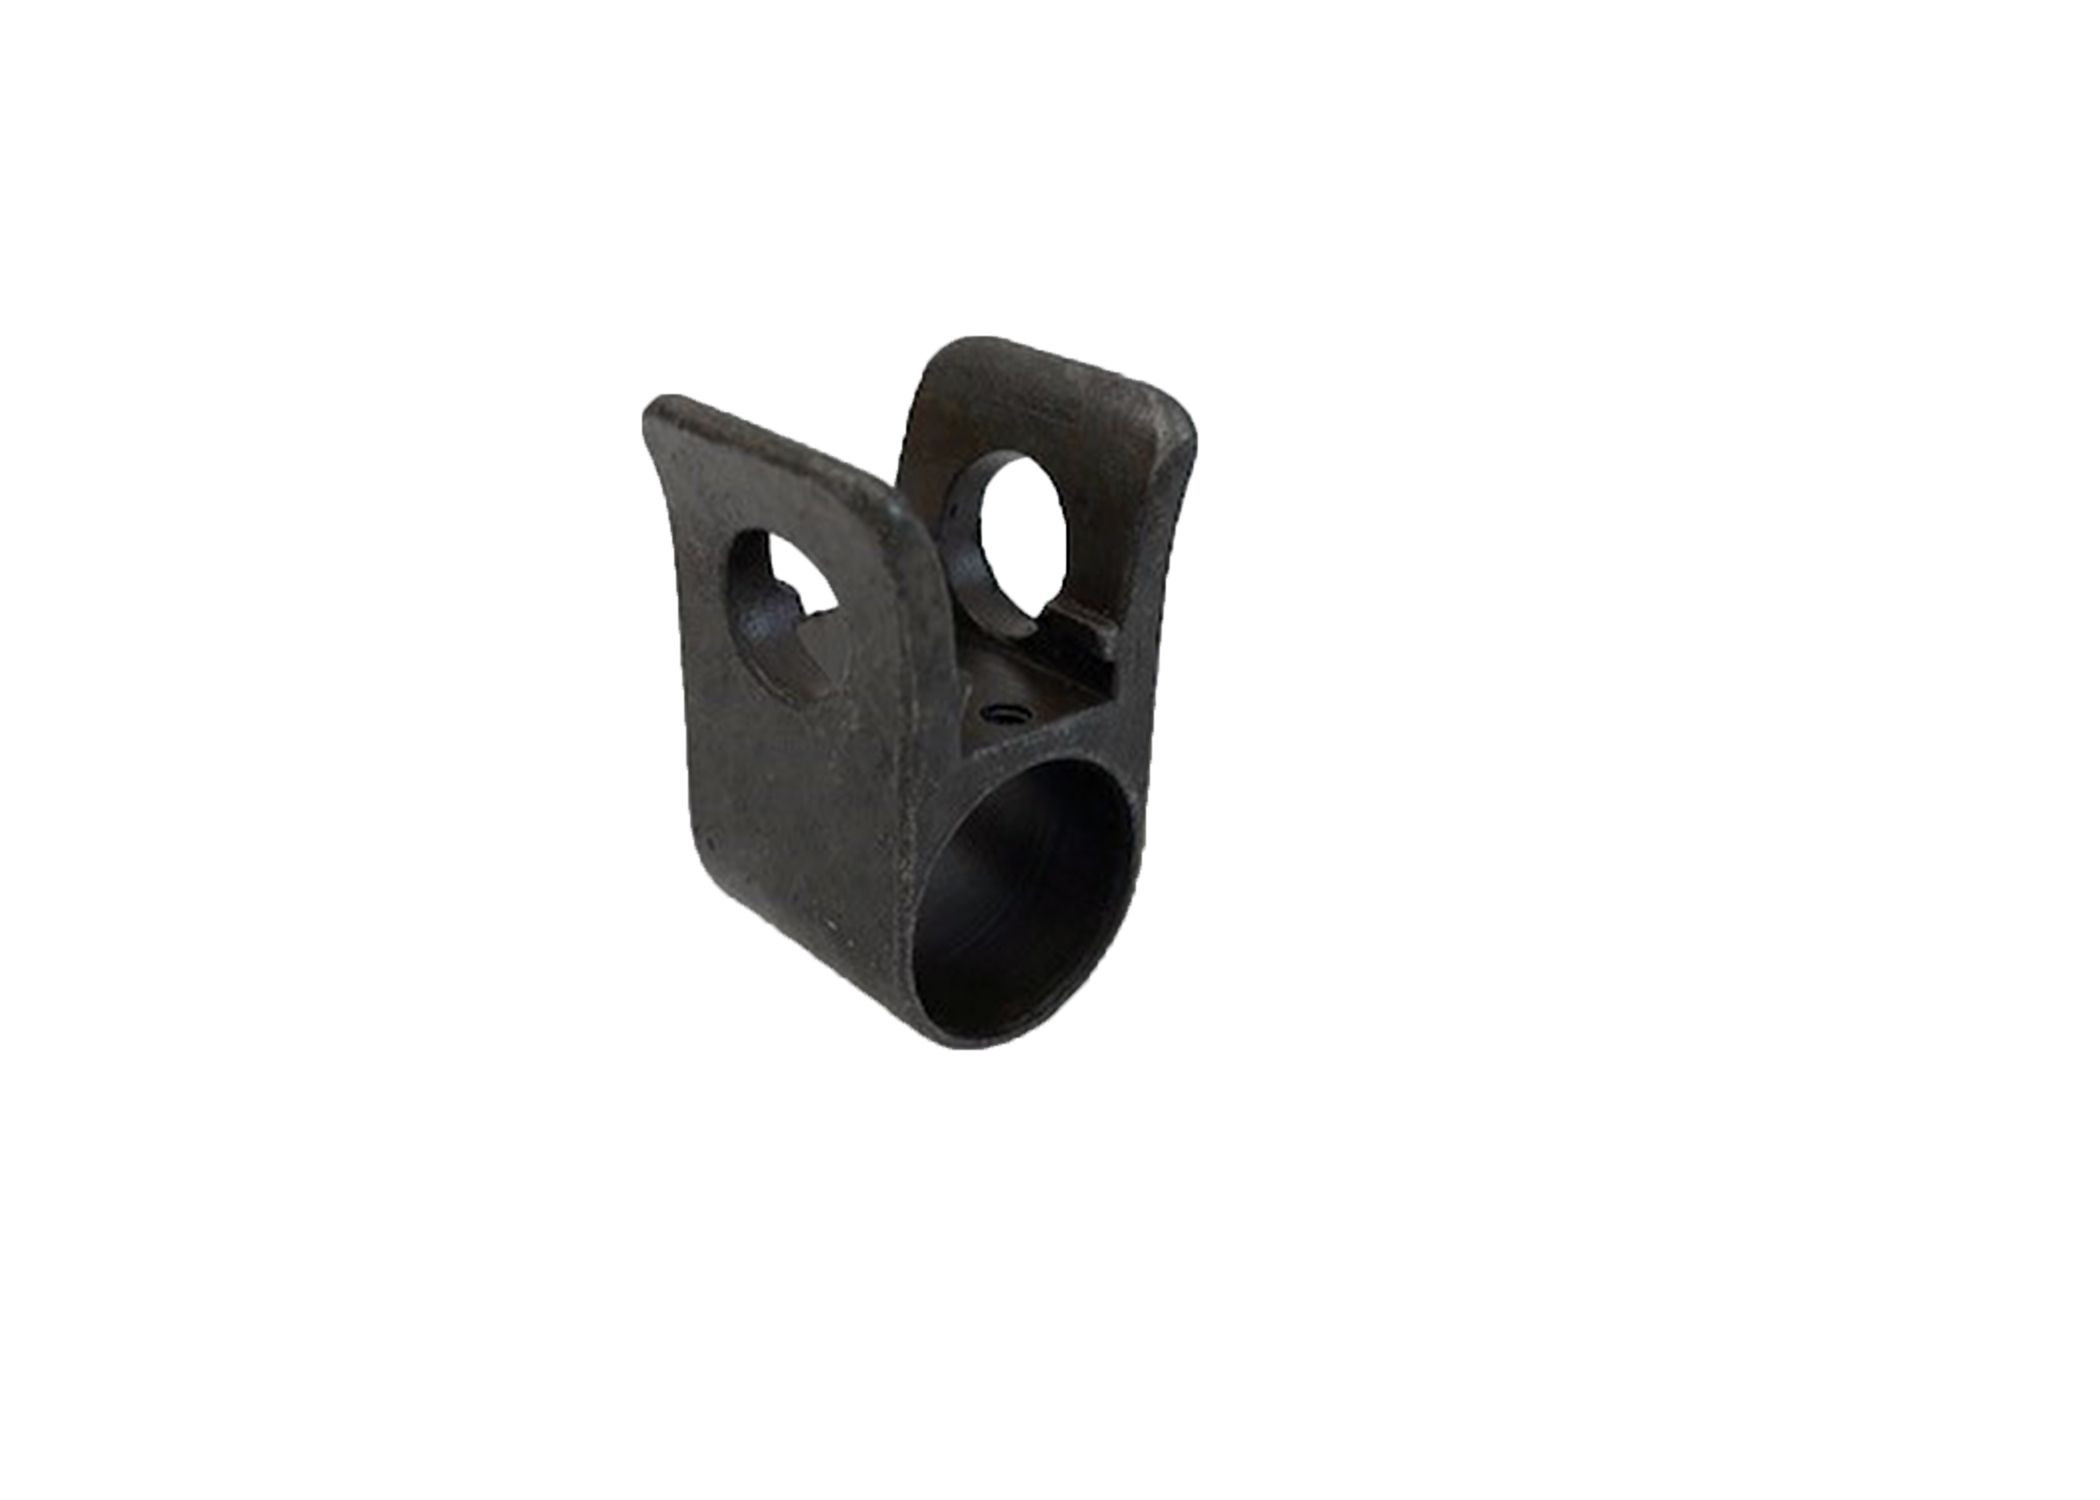 Finnish M28 Front Sight Protector